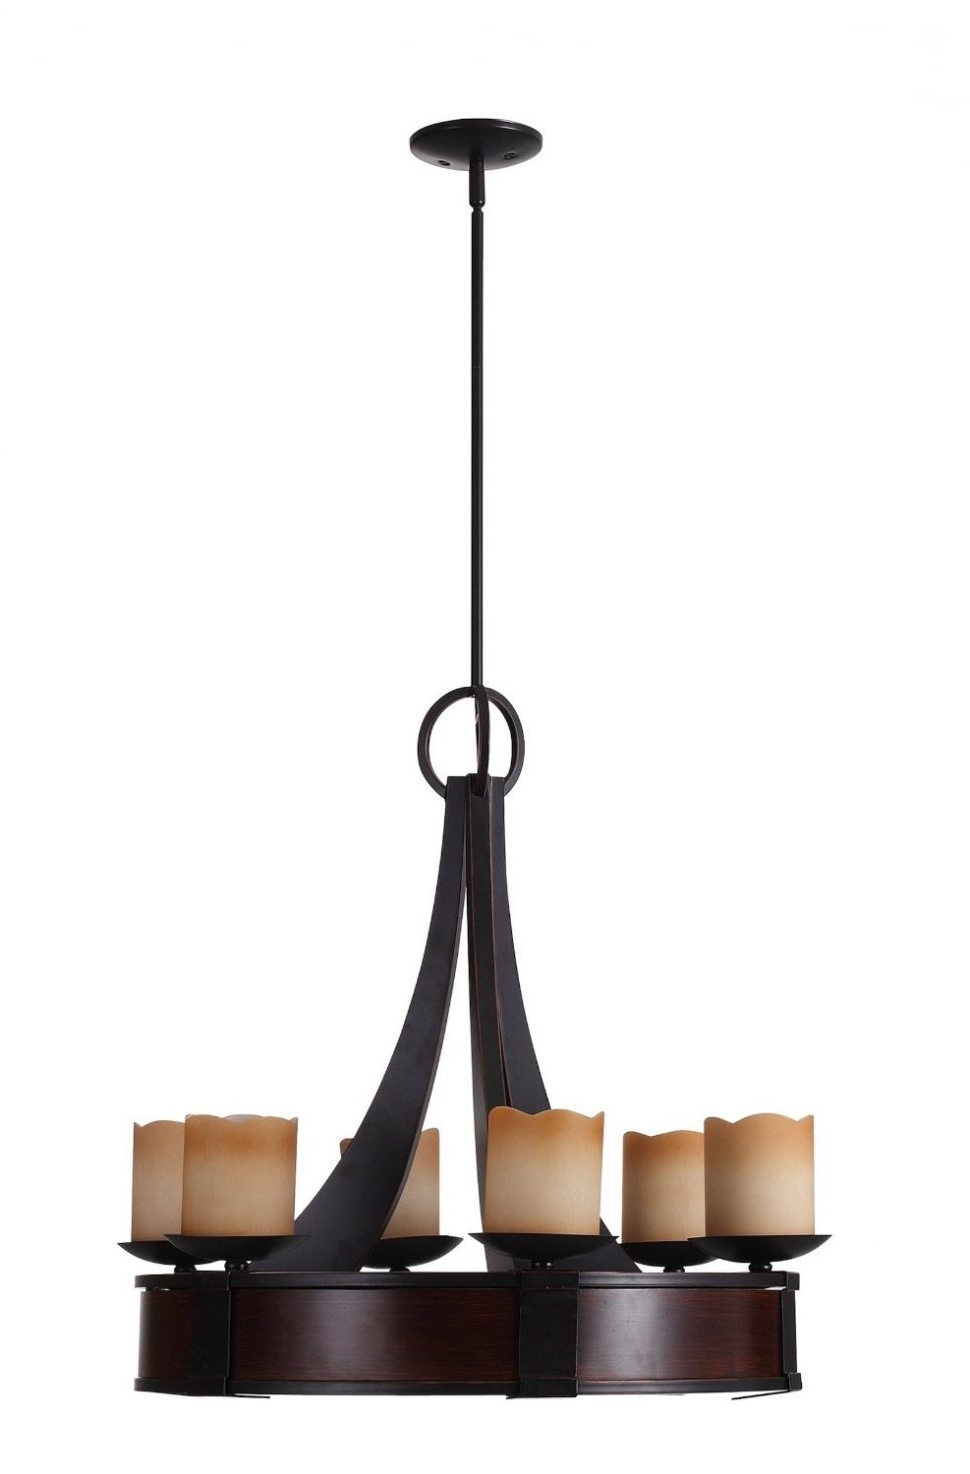 2018 Chandeliers Design : Awesome Rustic Wrought Iron Chandelier Wood And With Modern Wrought Iron Chandeliers (View 1 of 15)